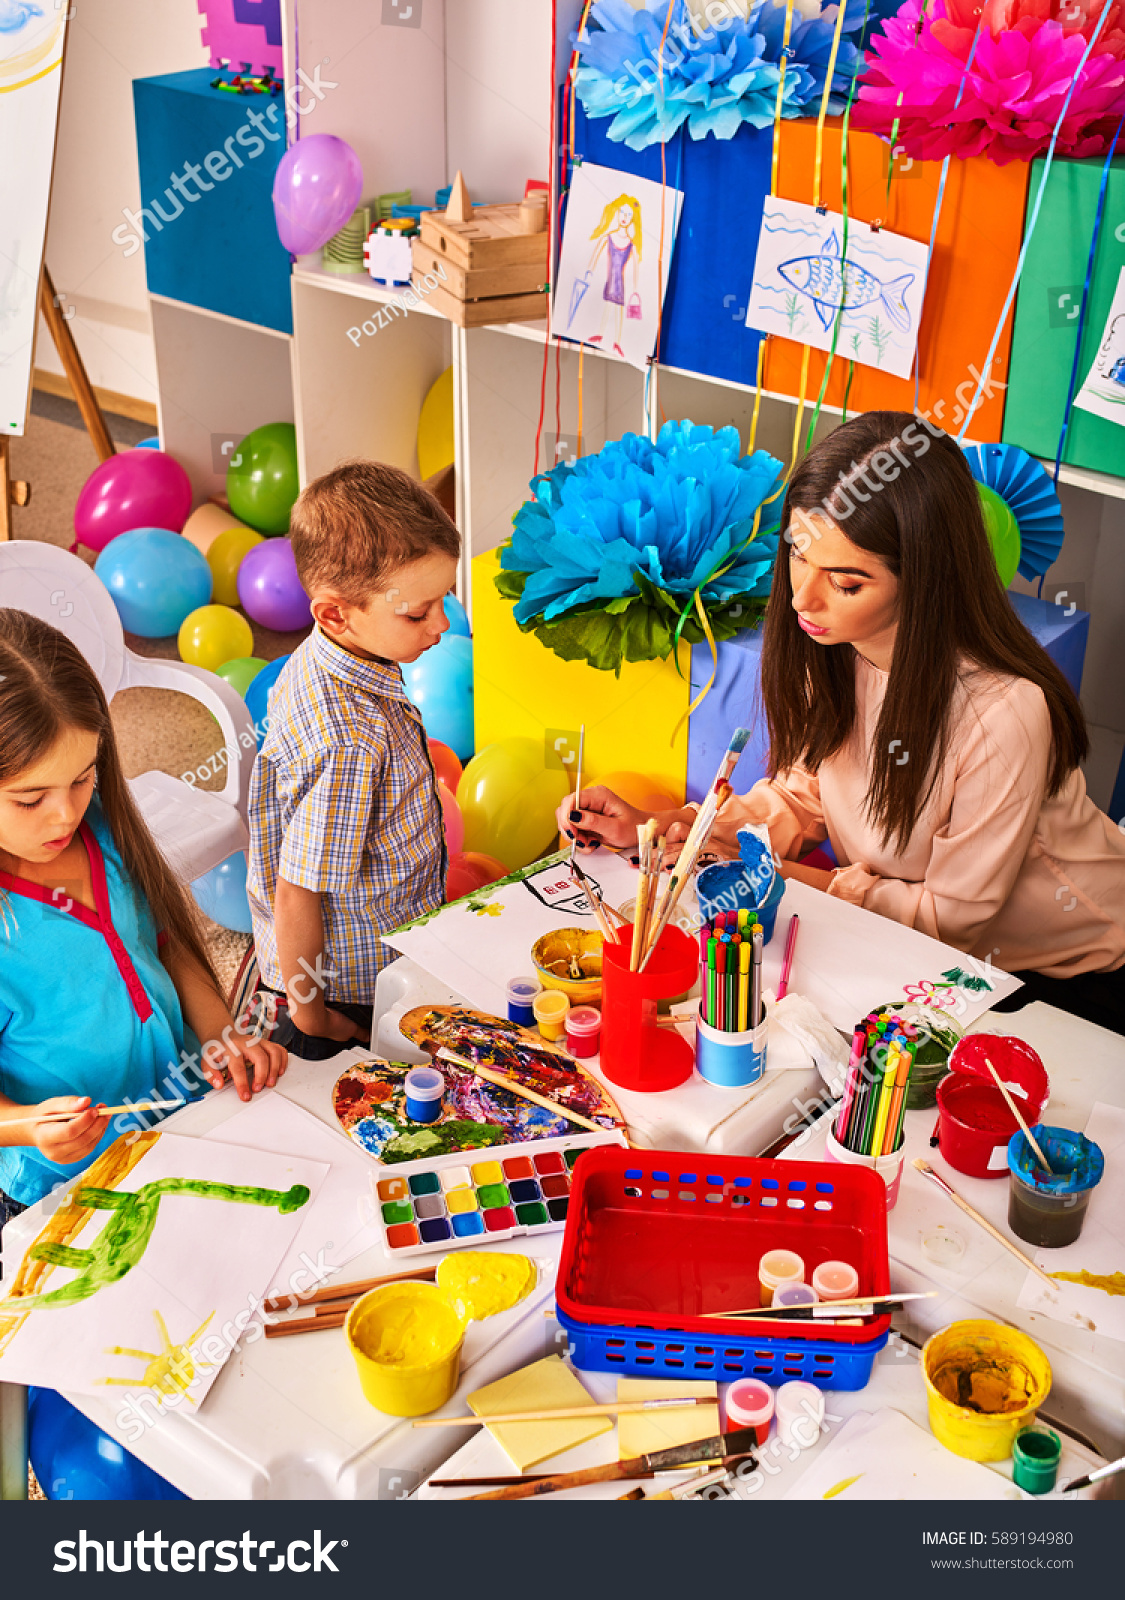 Childrens Paint Brushes Children Painting Drawing Stock Photo ...